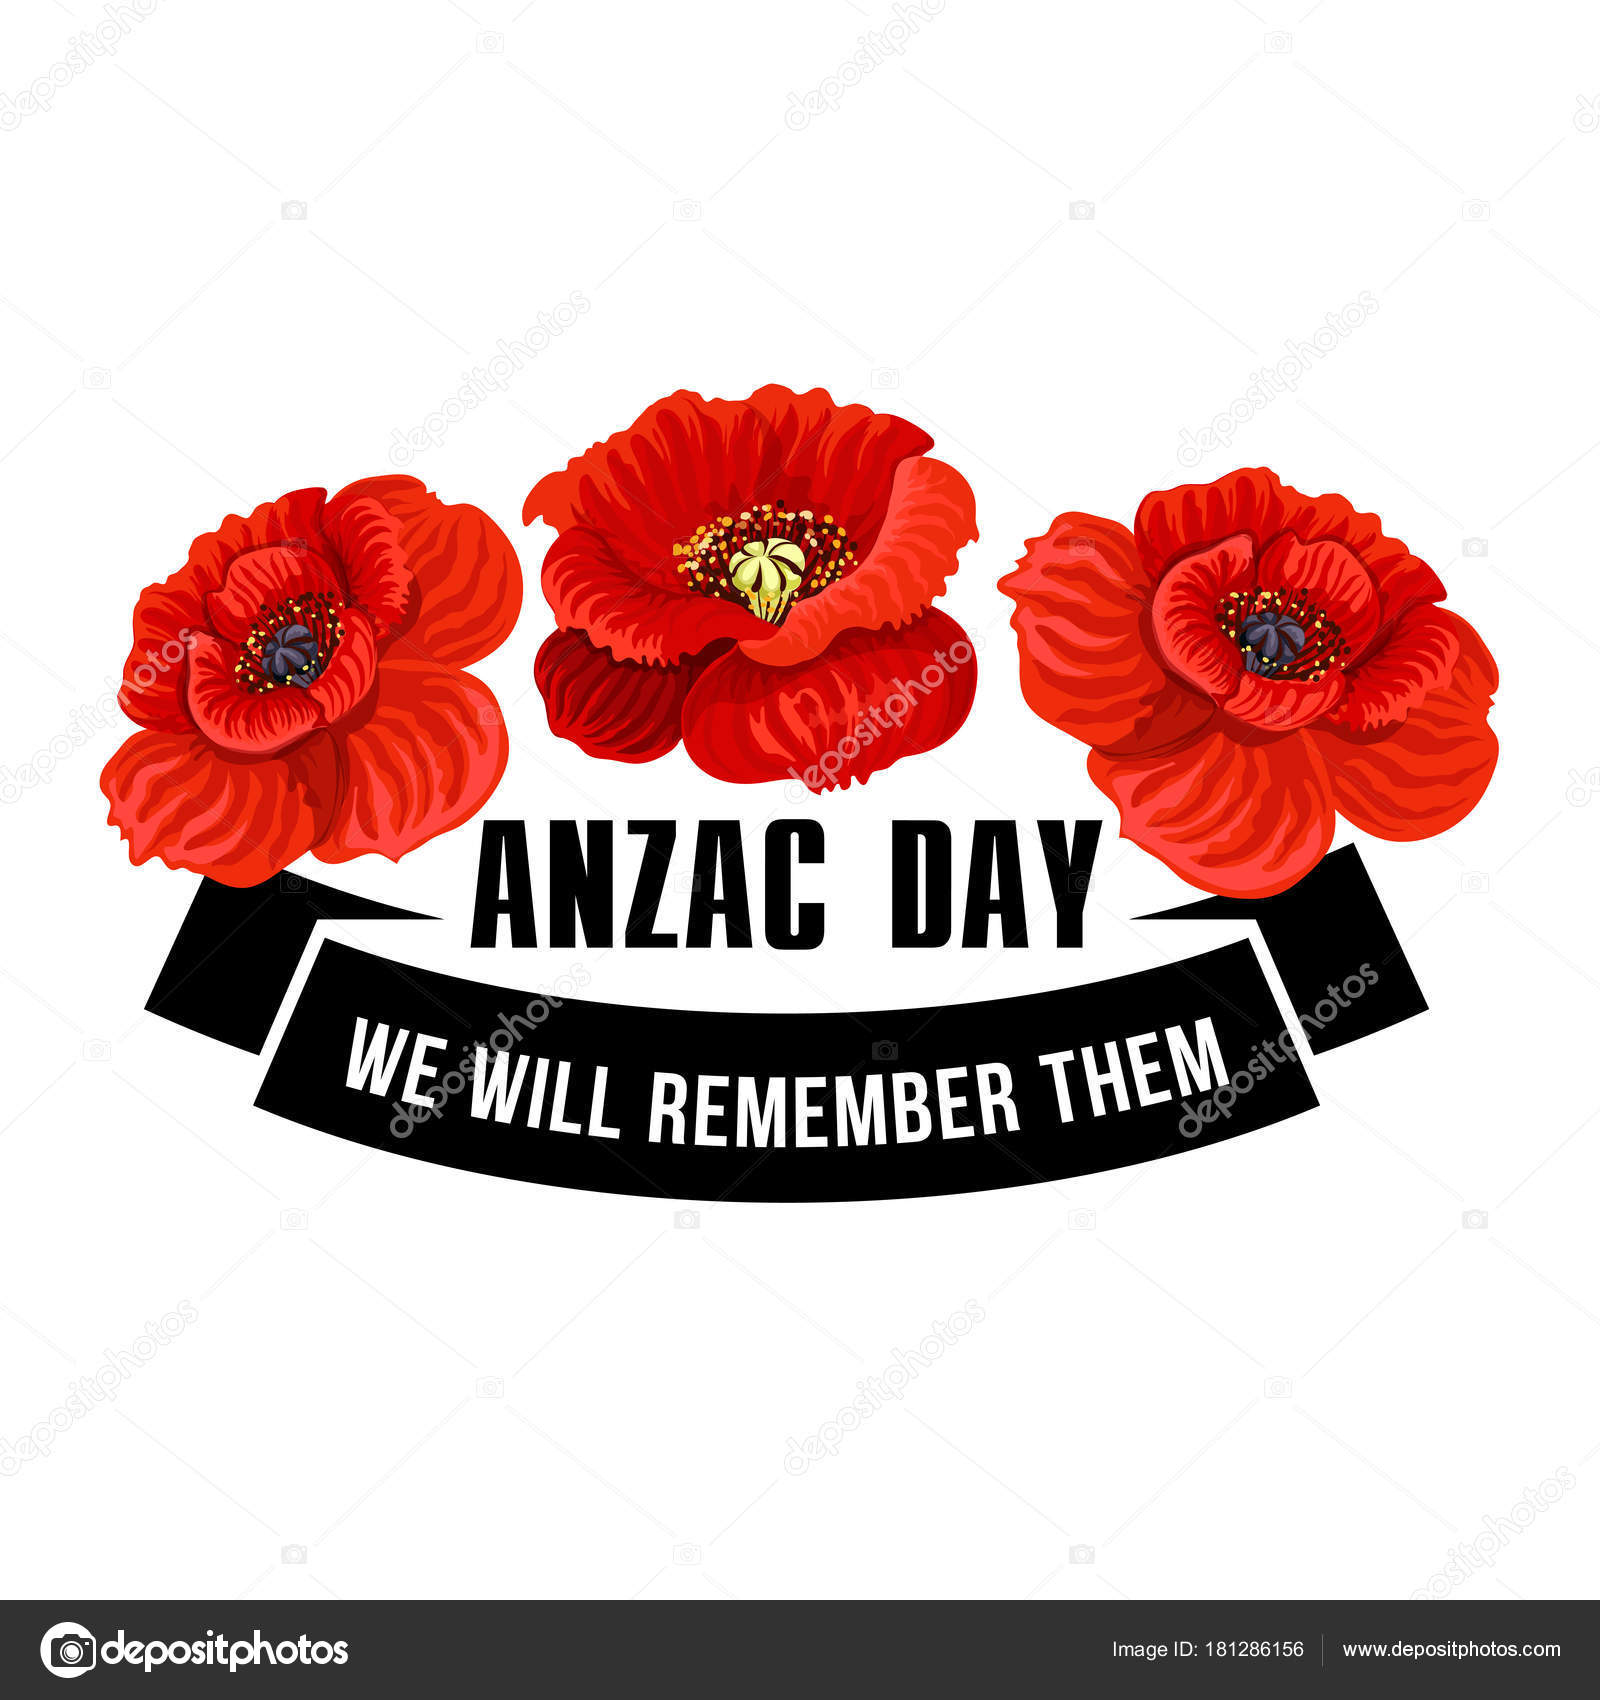 Anzac day icon of poppy flower with black ribbon stock vector anzac day flower symbol of red poppy black ribbon banner with we will remember them message and poppy flower for australian and new zealand army corps buycottarizona